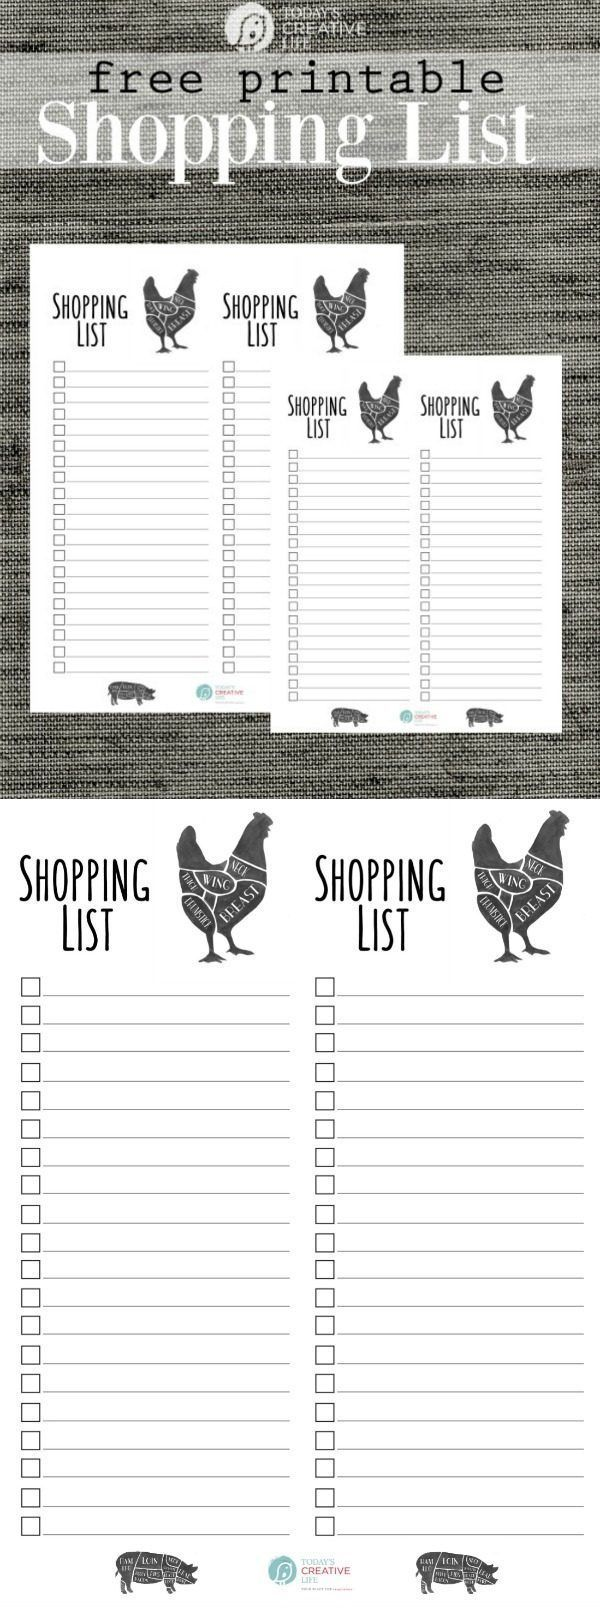 Grocery List Free Printable | This modern farmhouse printable shopping list looks as stylish as it is functional! Grab your free grocery list template on http://TodaysCreativeLife.com Just click the photo.